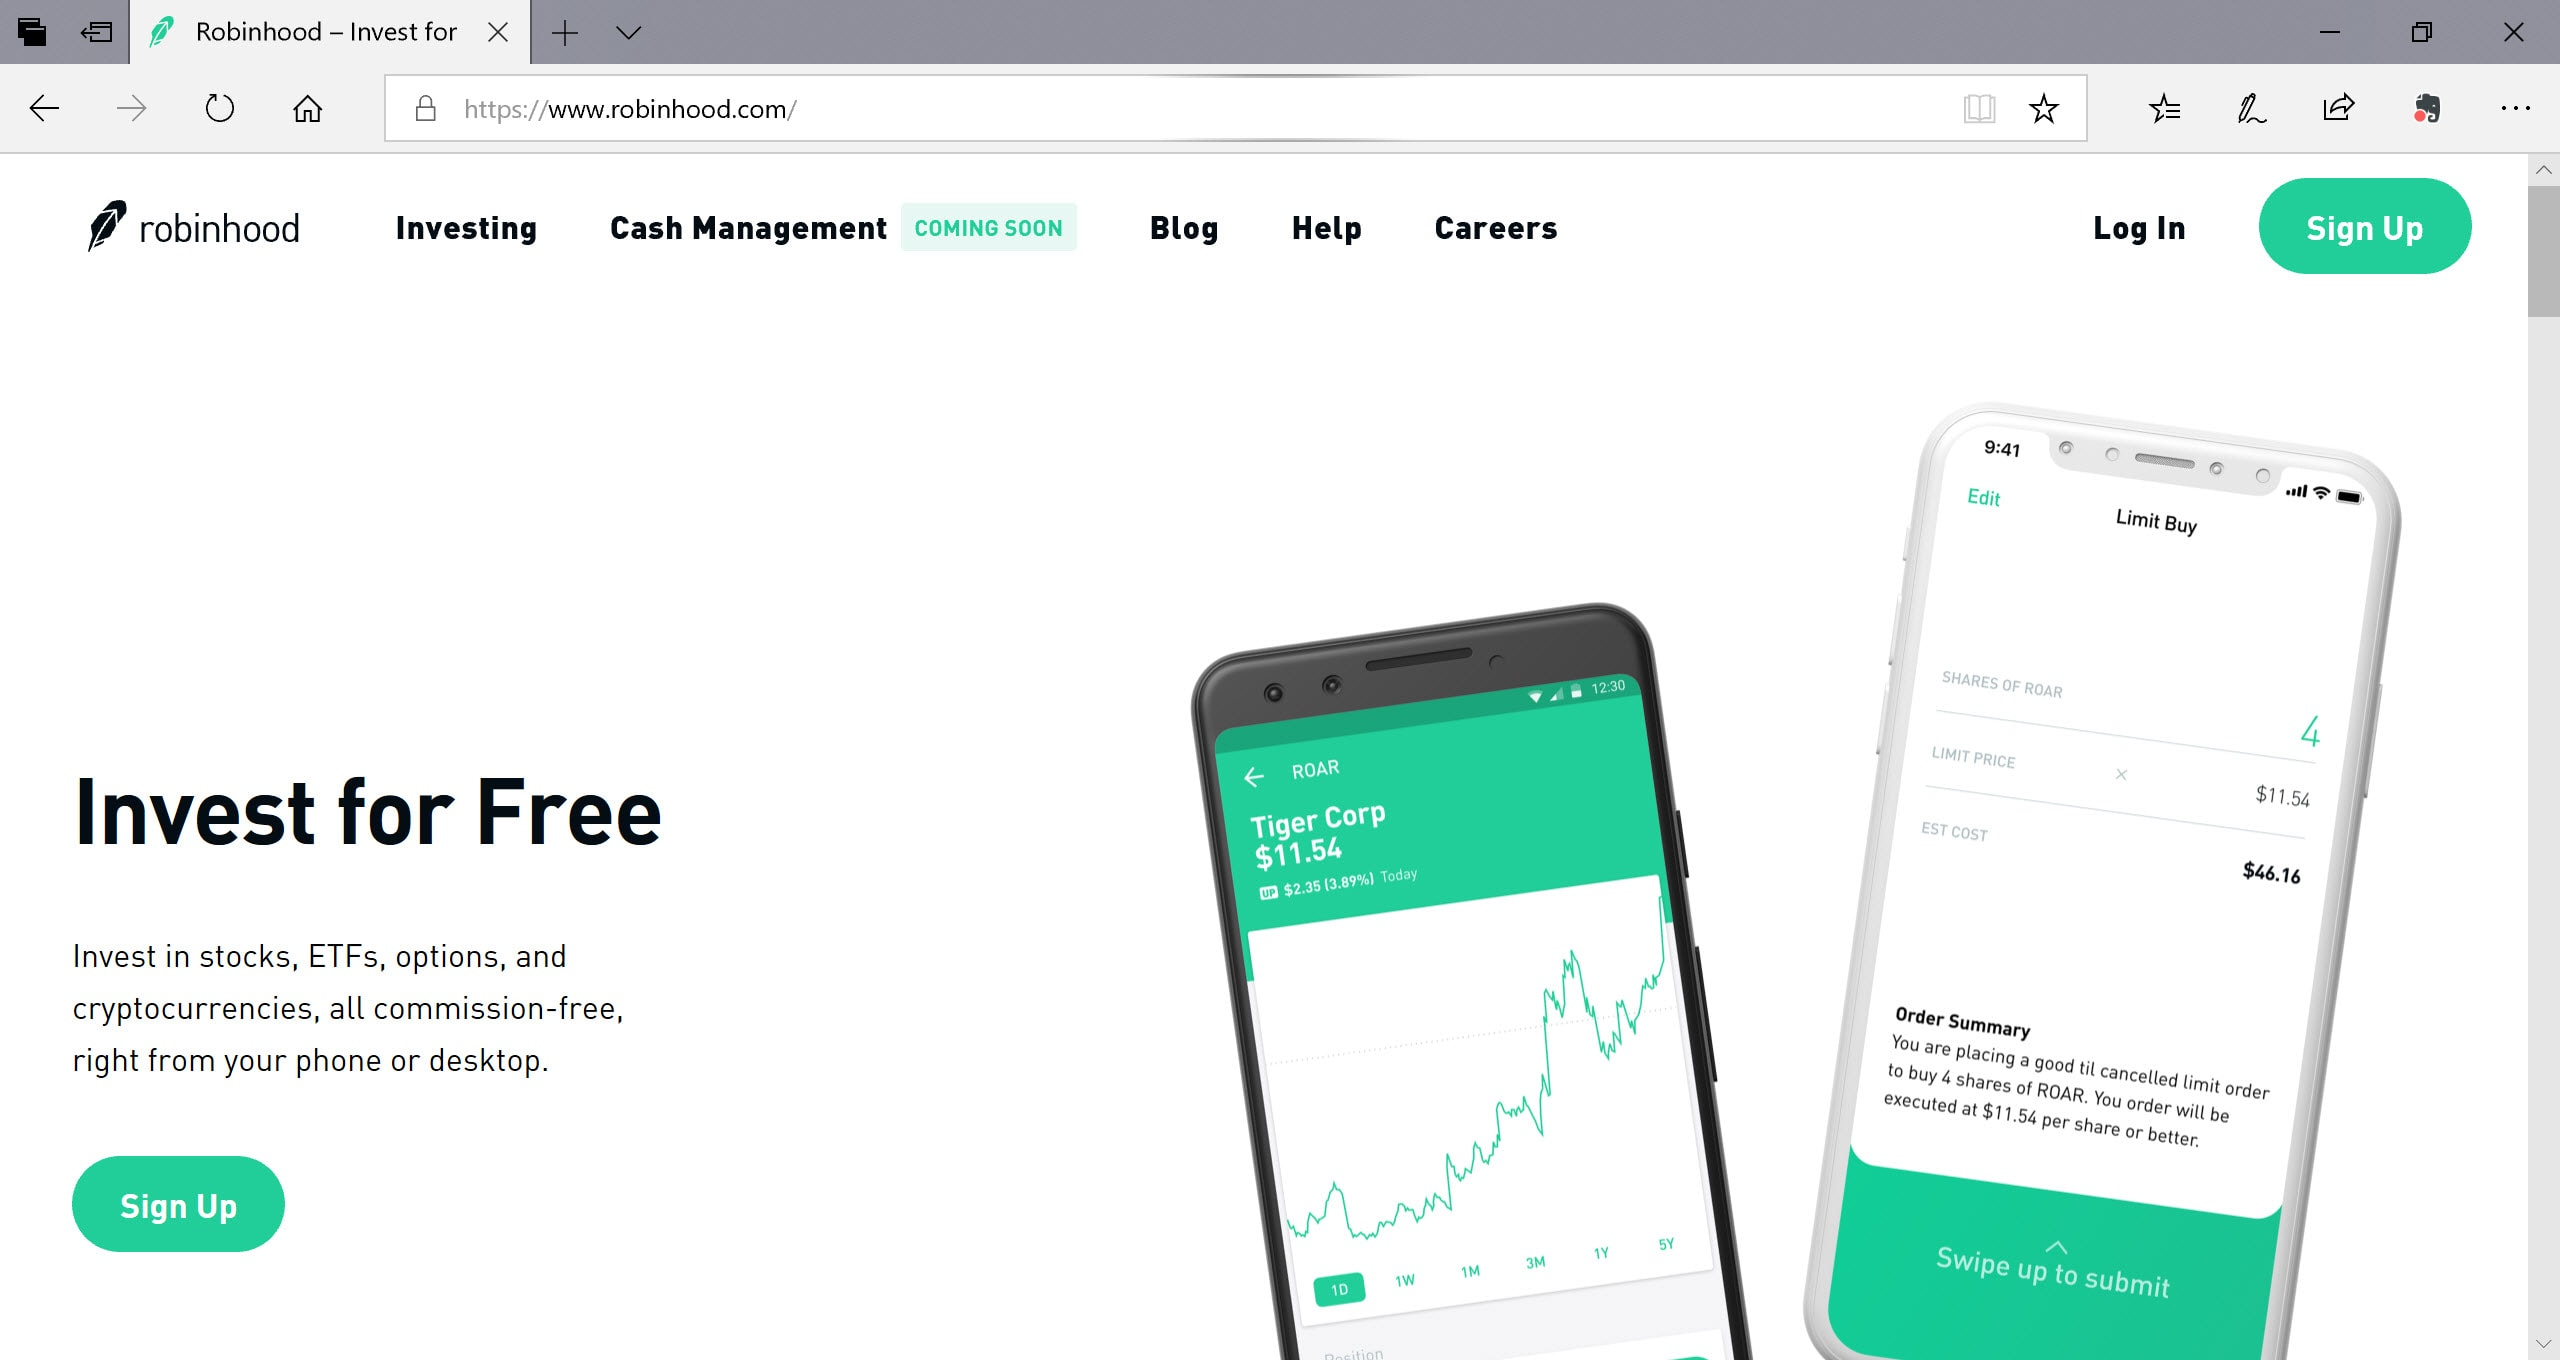 Robinhood Support Services